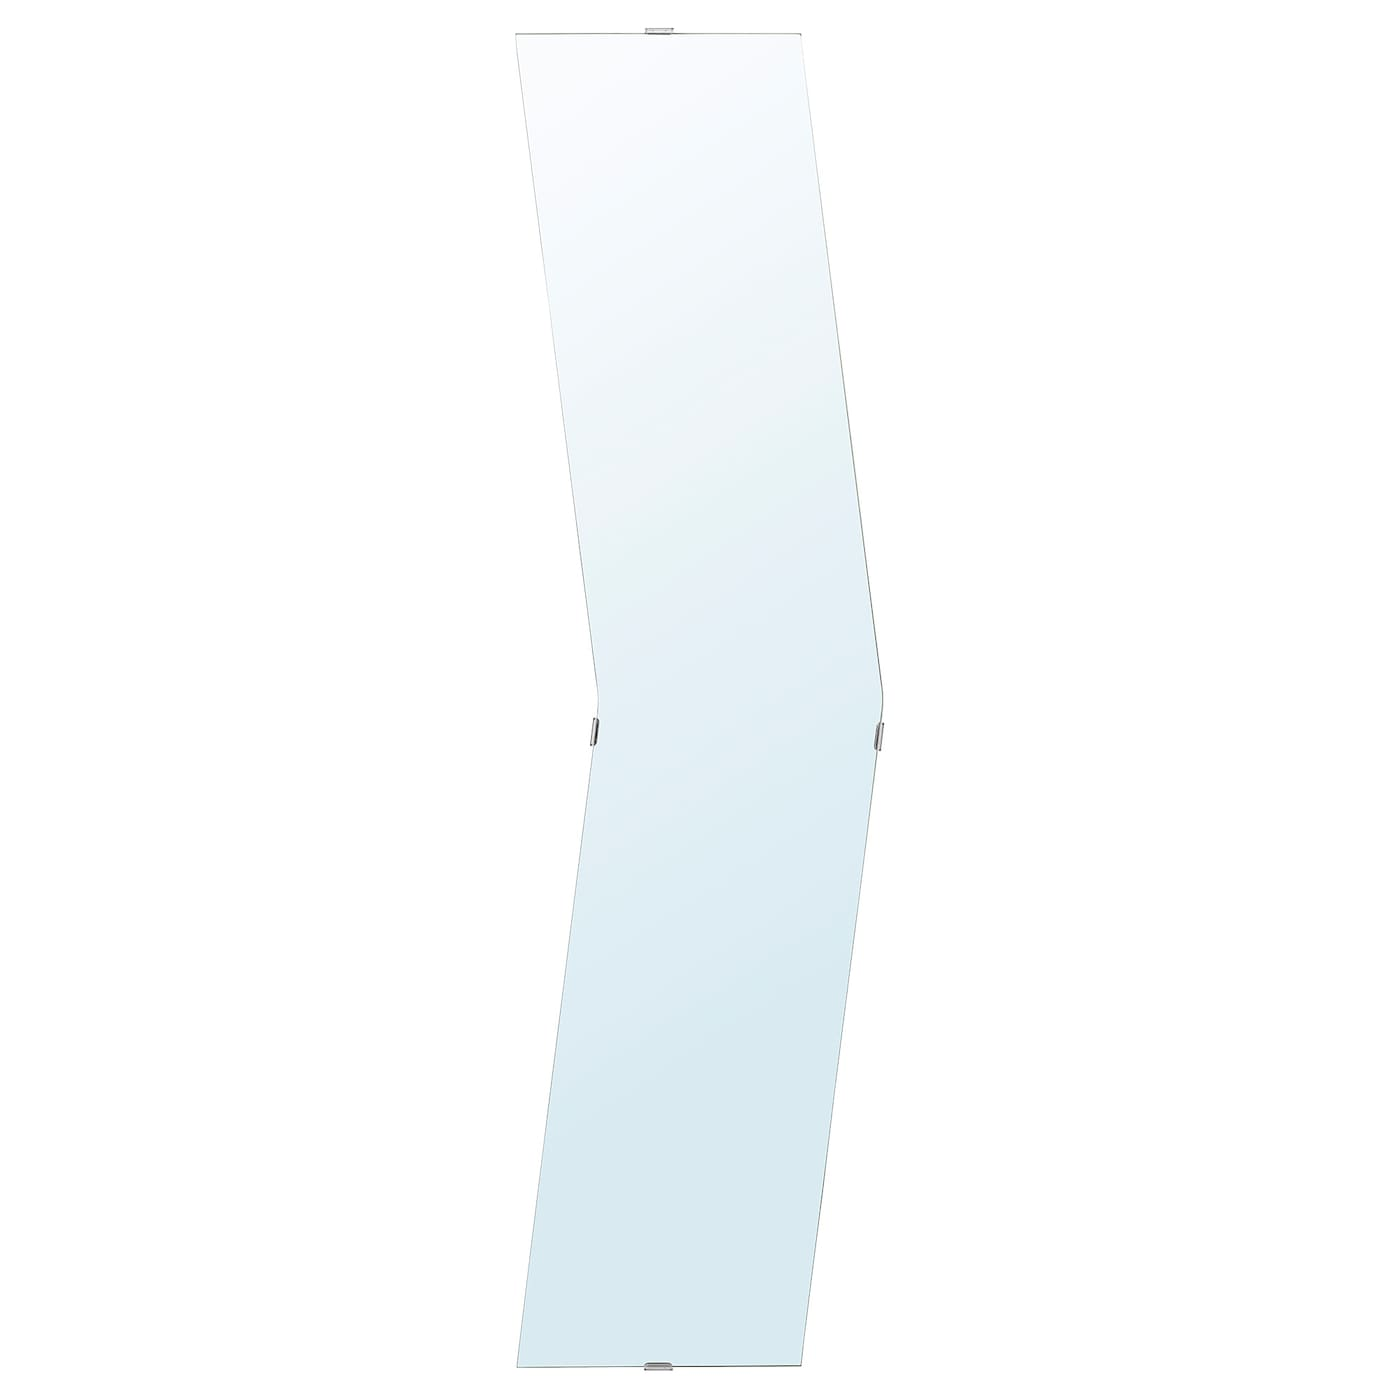 IKEA SKÅBU mirror Full-length mirror. Provided with safety film - reduces damage if glass is broken.